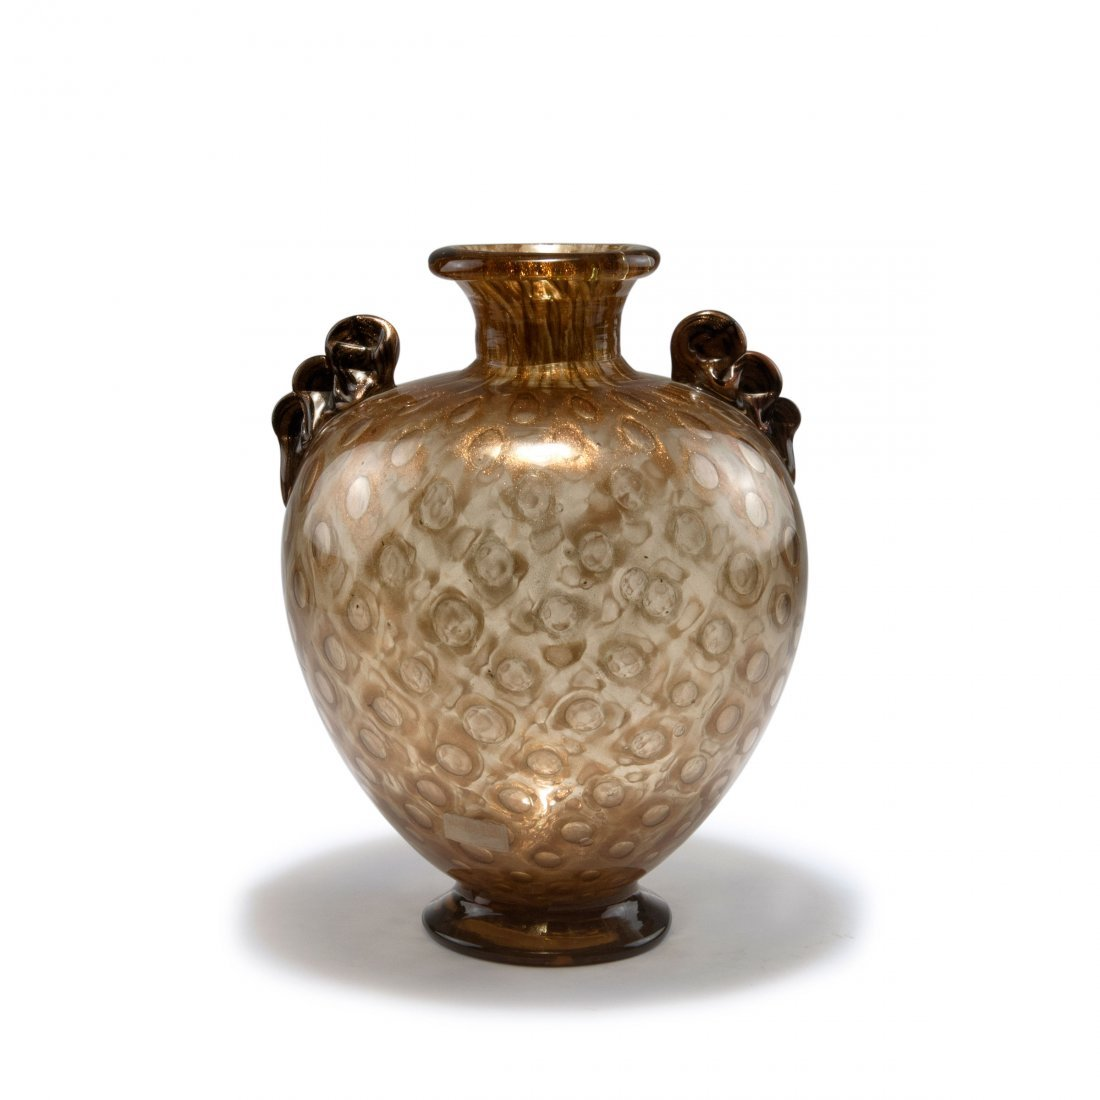 'Avventurina a bolle' vase with handles, c1936